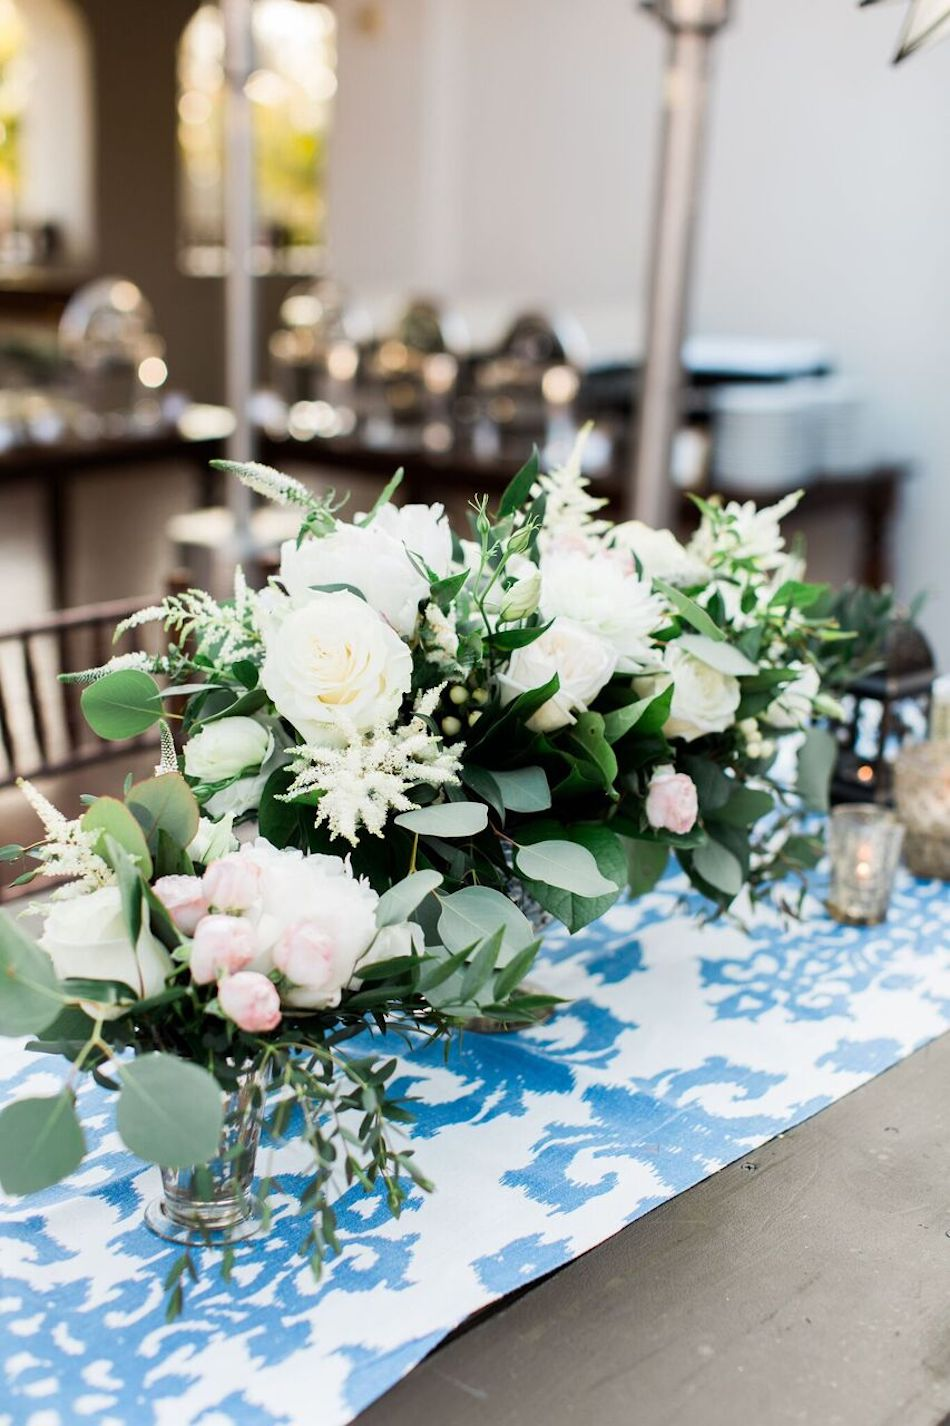 white flowers, centerpieces, navy and white, bacara resort, santa barbara wedding, orange county wedding, orange county florist, wedding florist, flowers by cina, wedding flowers, floral design, orange county floral design